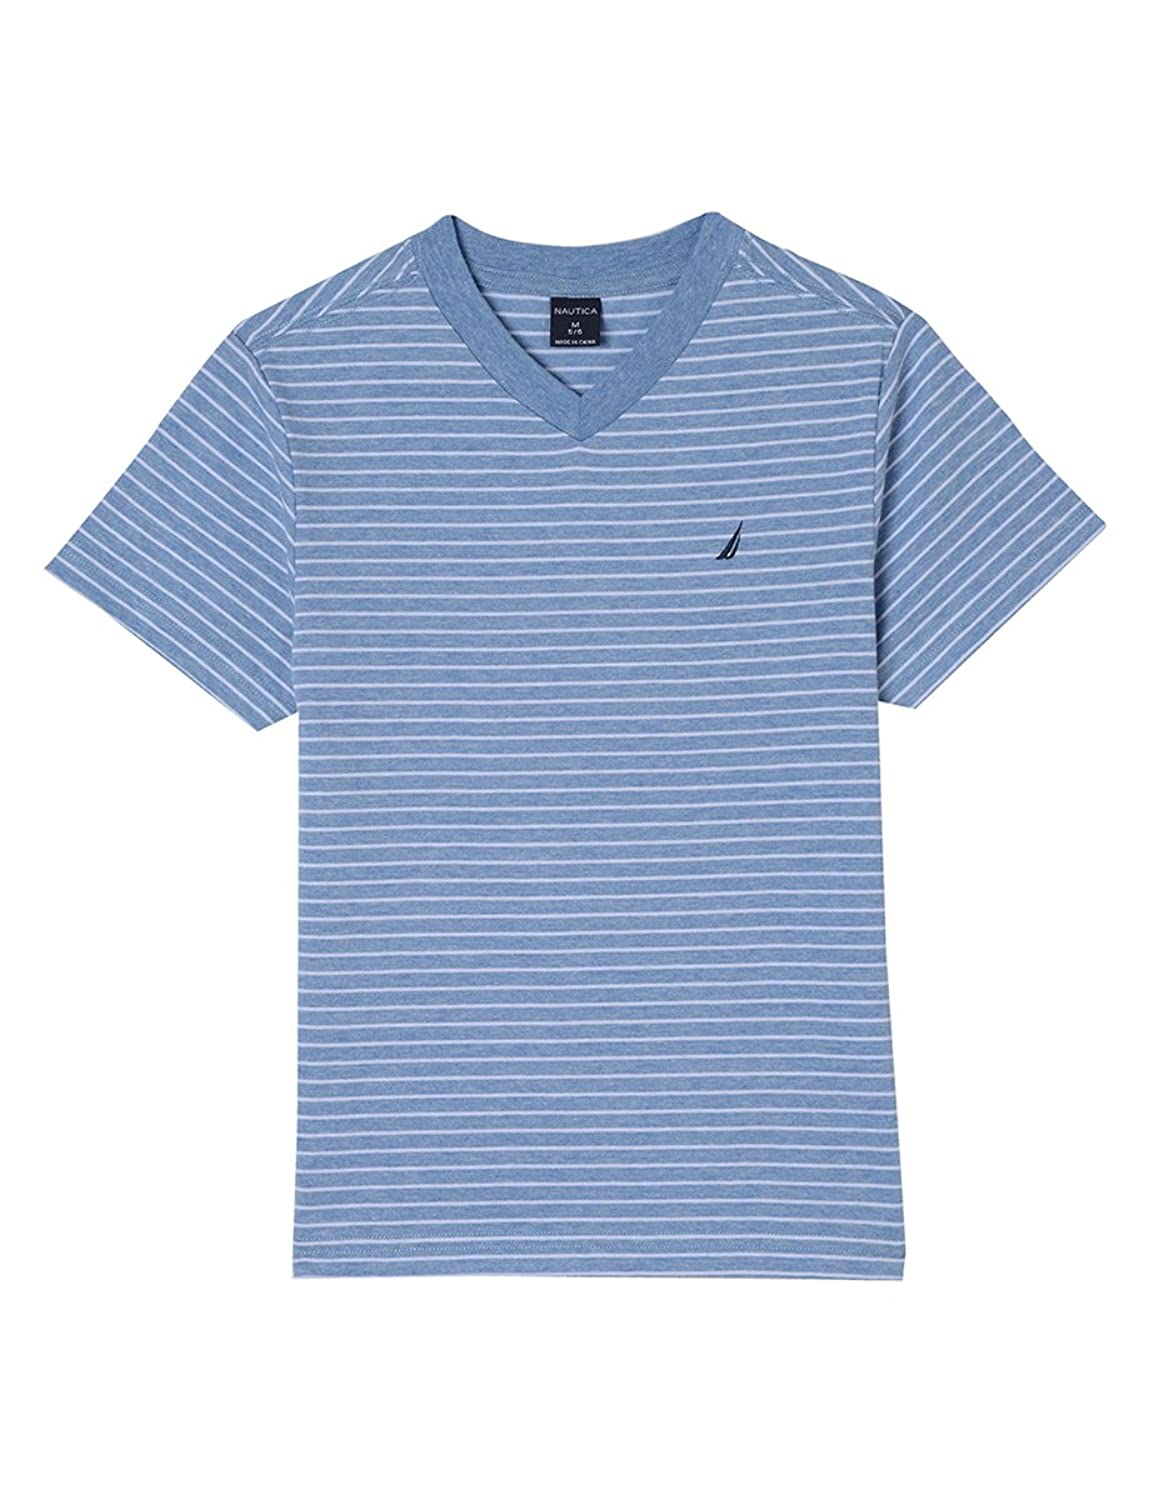 755ad58a4a2 Top 10 wholesale V Neck Striped Shirt - Chinabrands.com